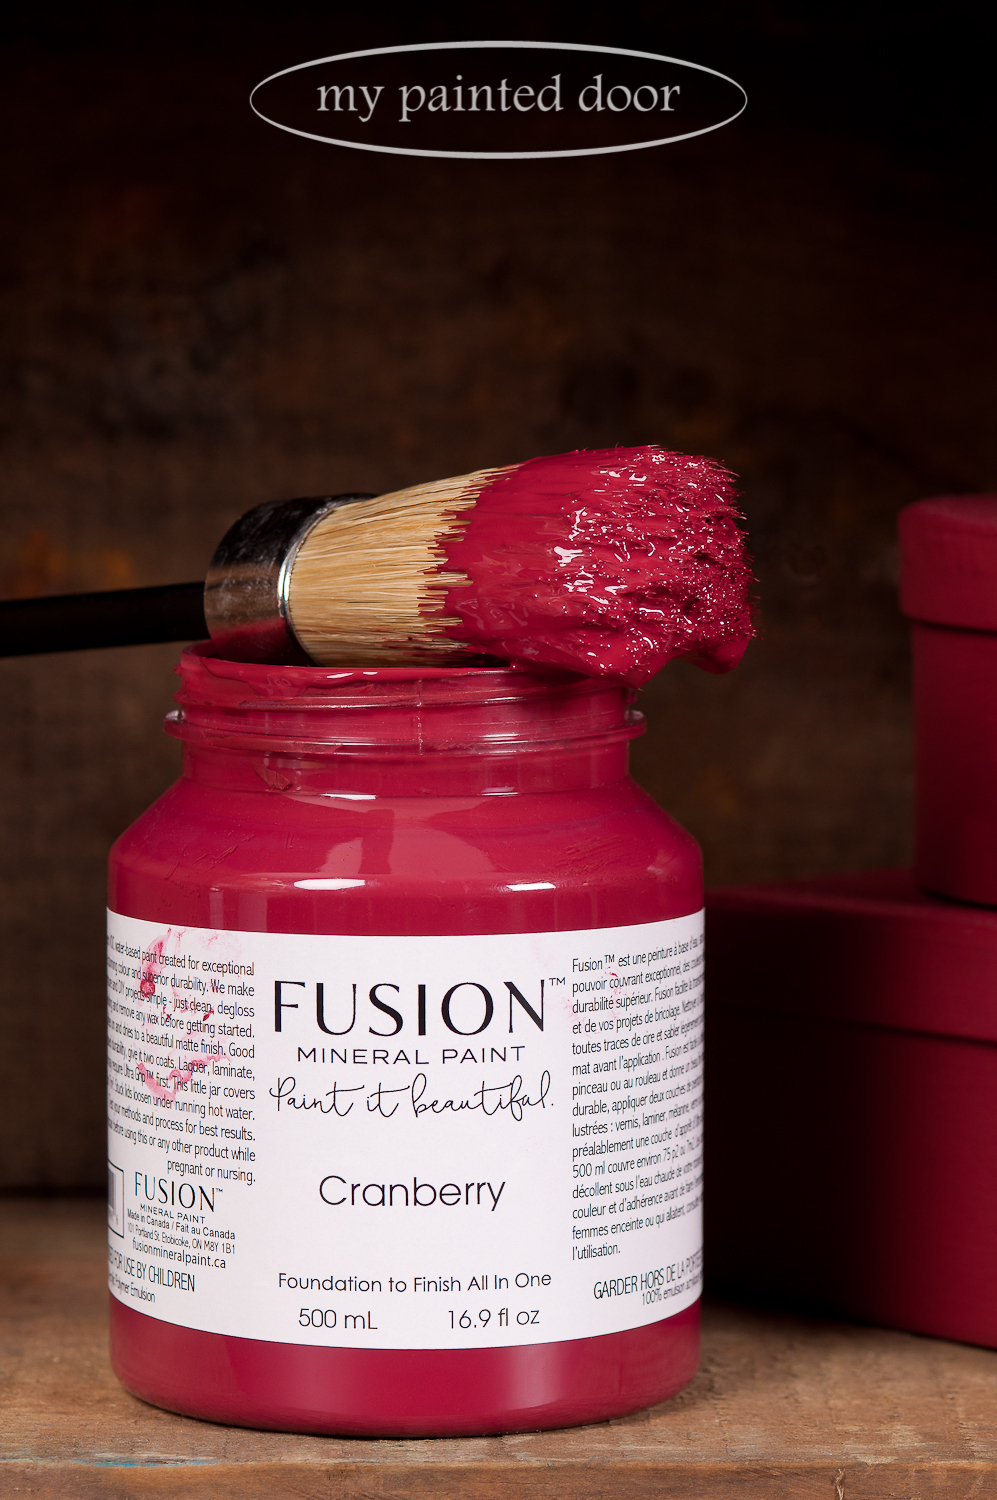 Cranberry is another new Fusion Mineral Paint colour. It's a natural luscious burgundy red reminiscent of cranberries.